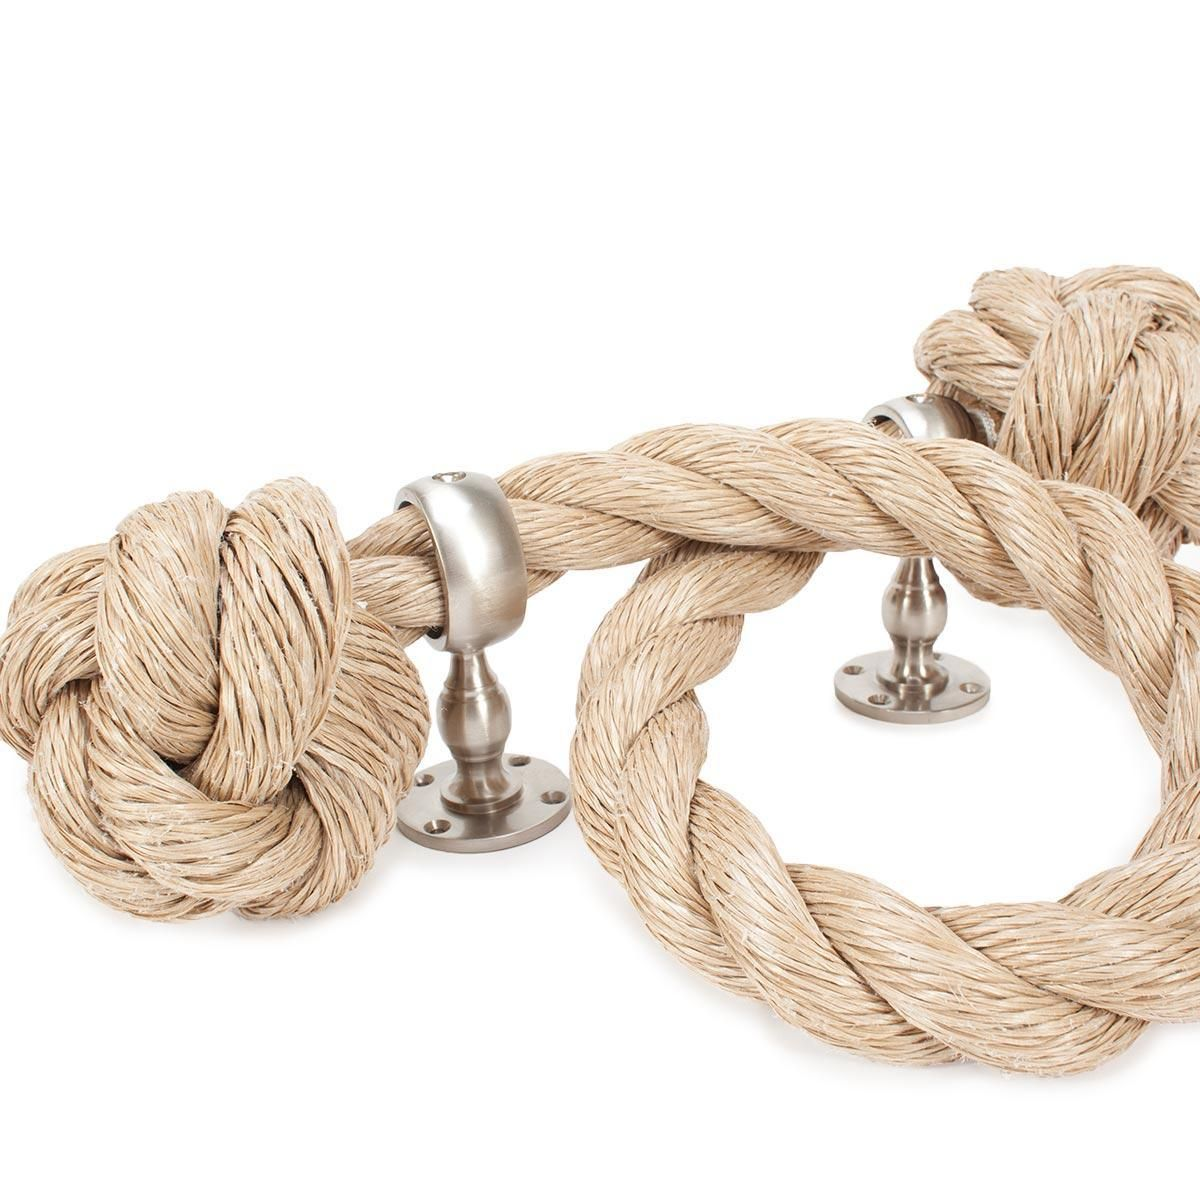 1 1 4 Pro Manila In 2020 Rope Knots This Or That Questions